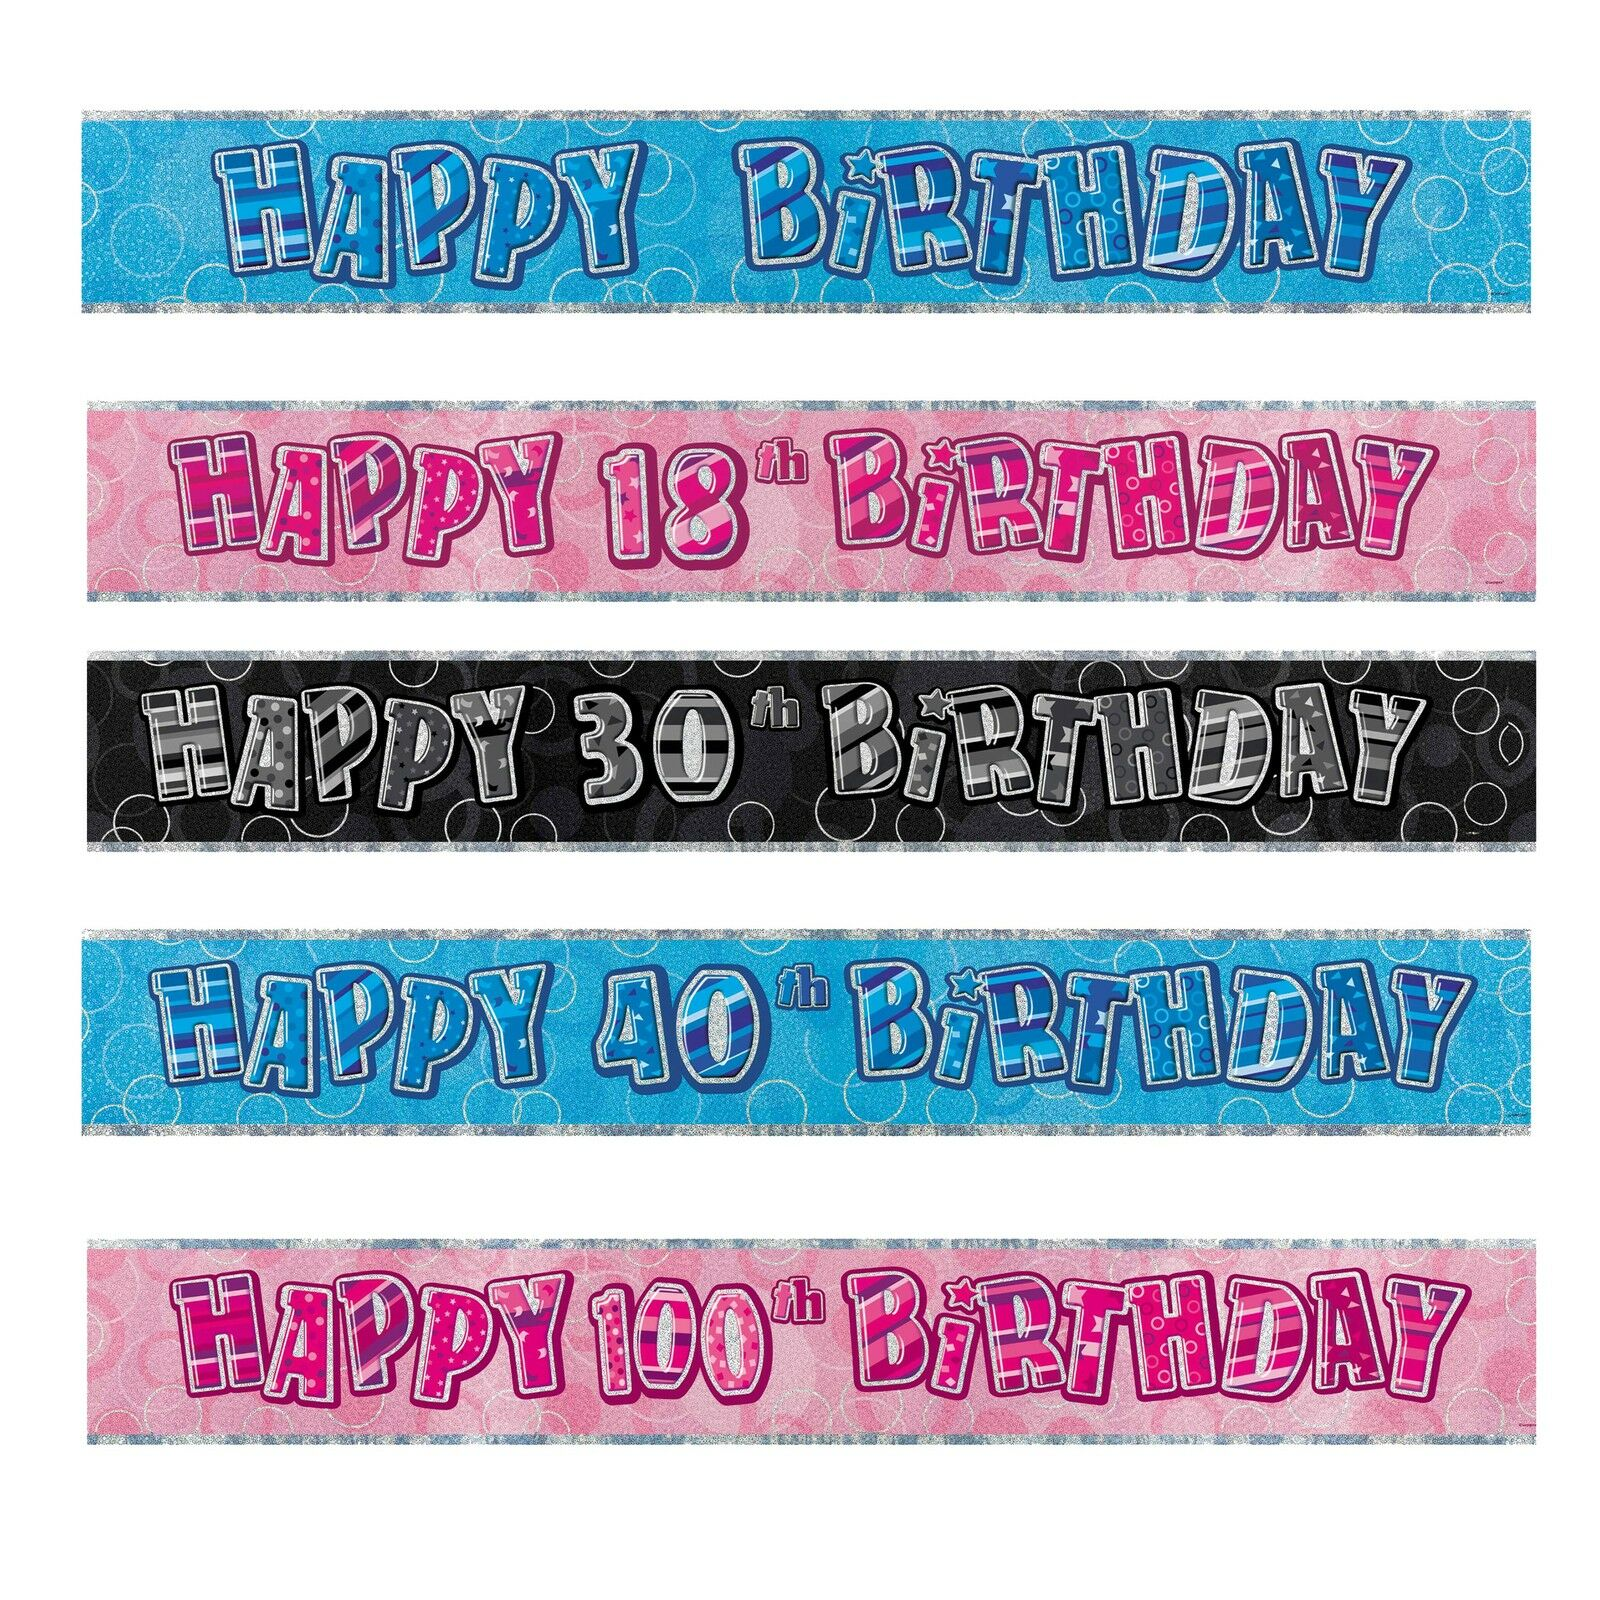 FOIL BANNER Birthday Party BANNERS Milestone Decorations